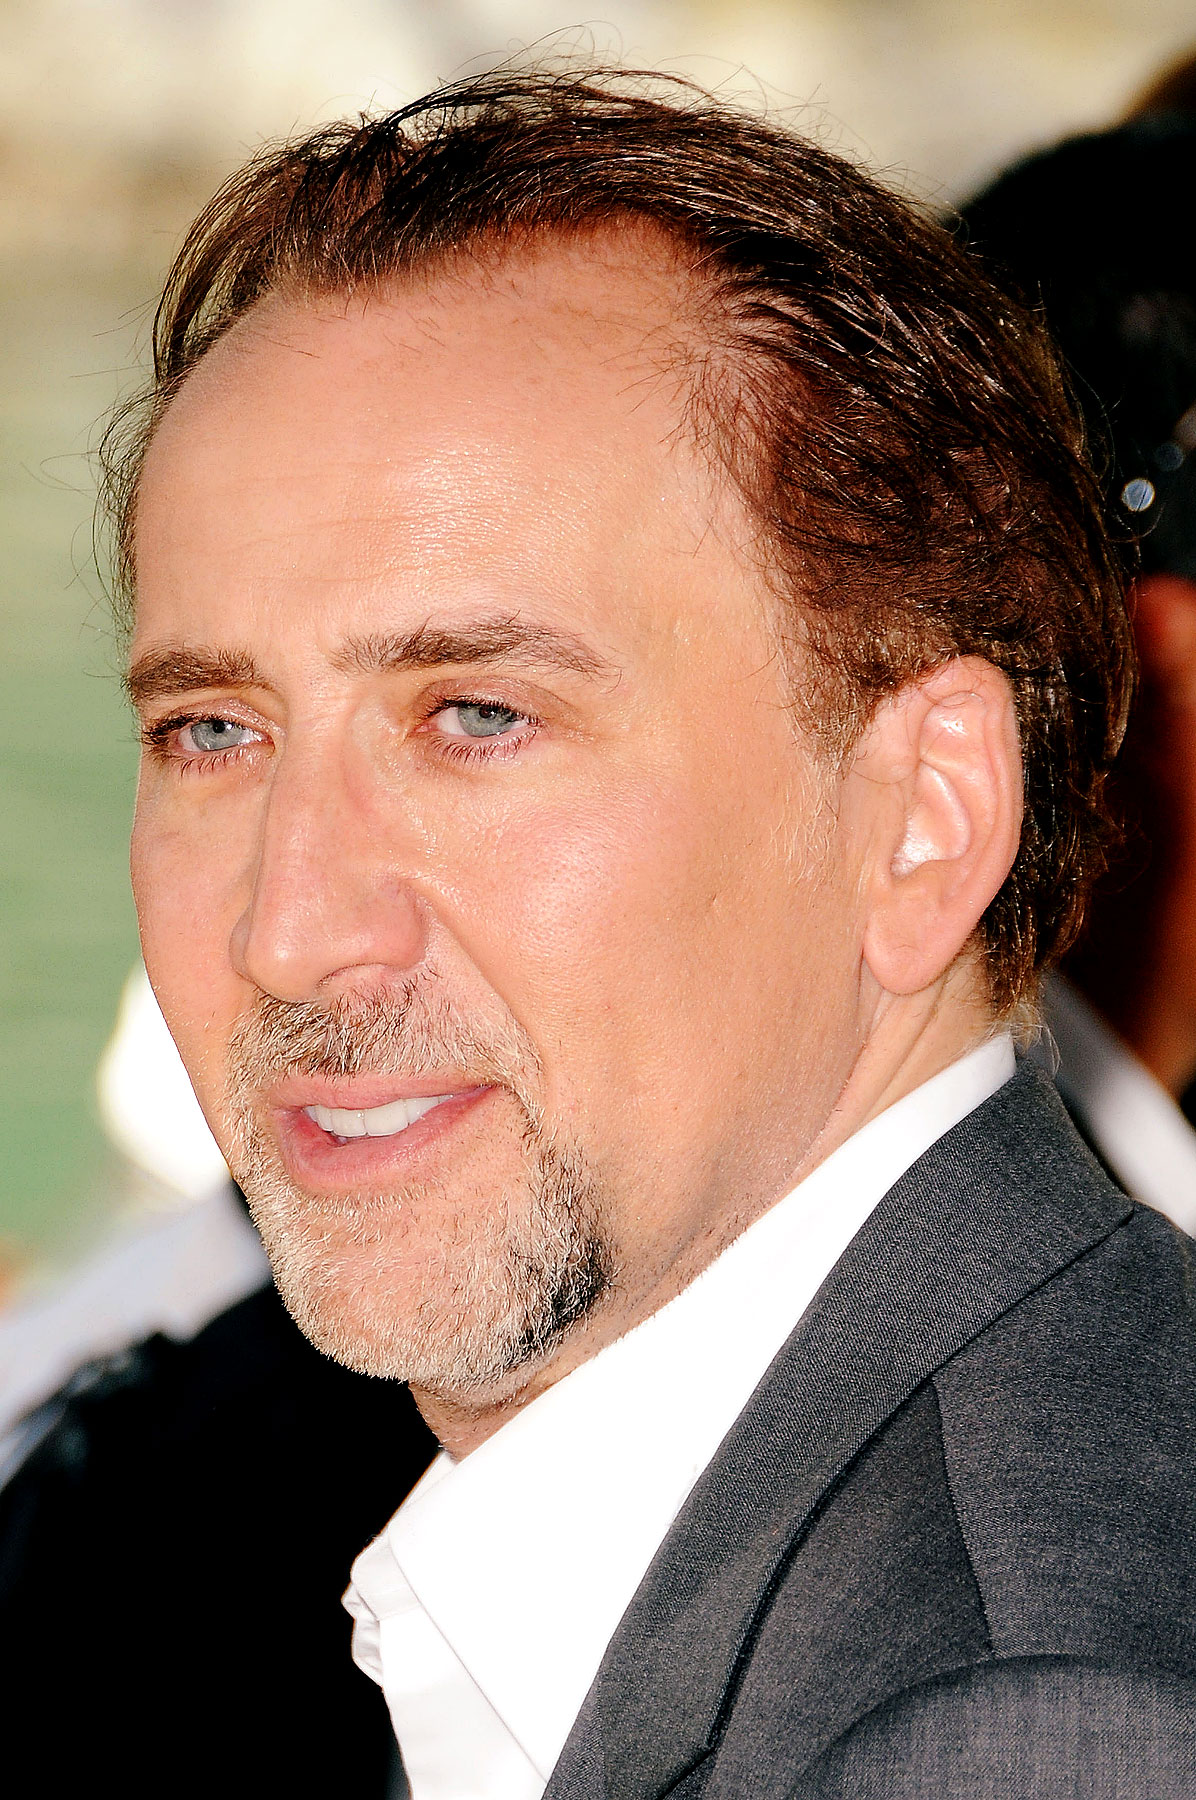 Nicolas Cage's 15 All-Time Hottest Looks (PHOTOS)